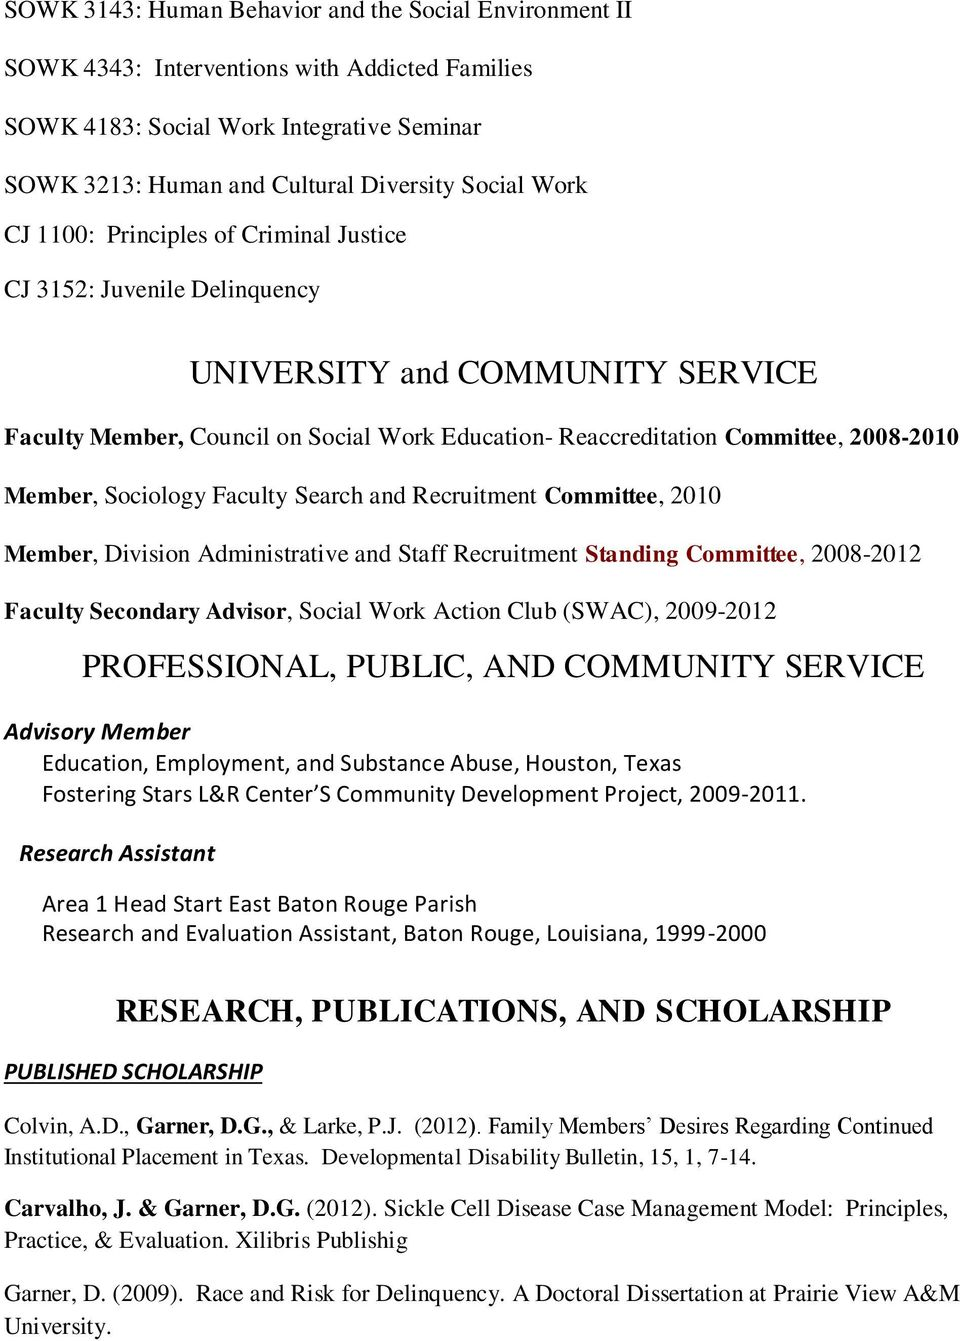 Sociology Faculty Search and Recruitment Committee, 2010 Member, Division Administrative and Staff Recruitment Standing Committee, 2008-2012 Faculty Secondary Advisor, Social Work Action Club (SWAC),